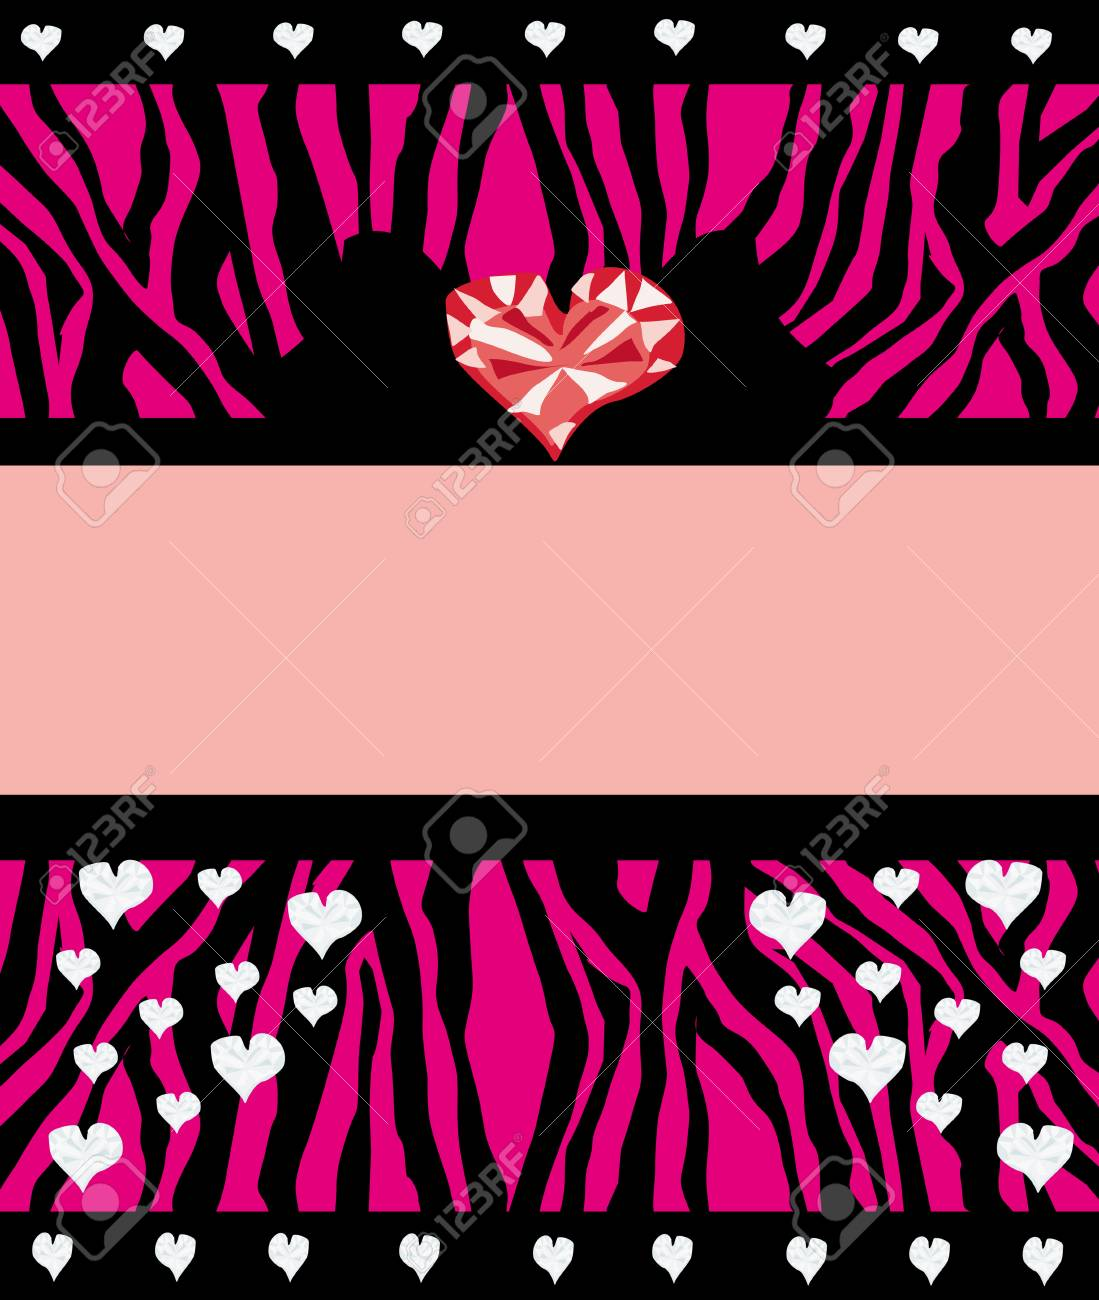 Invitation Cards Template With Abstract Diamond Hearts And Zebra ...